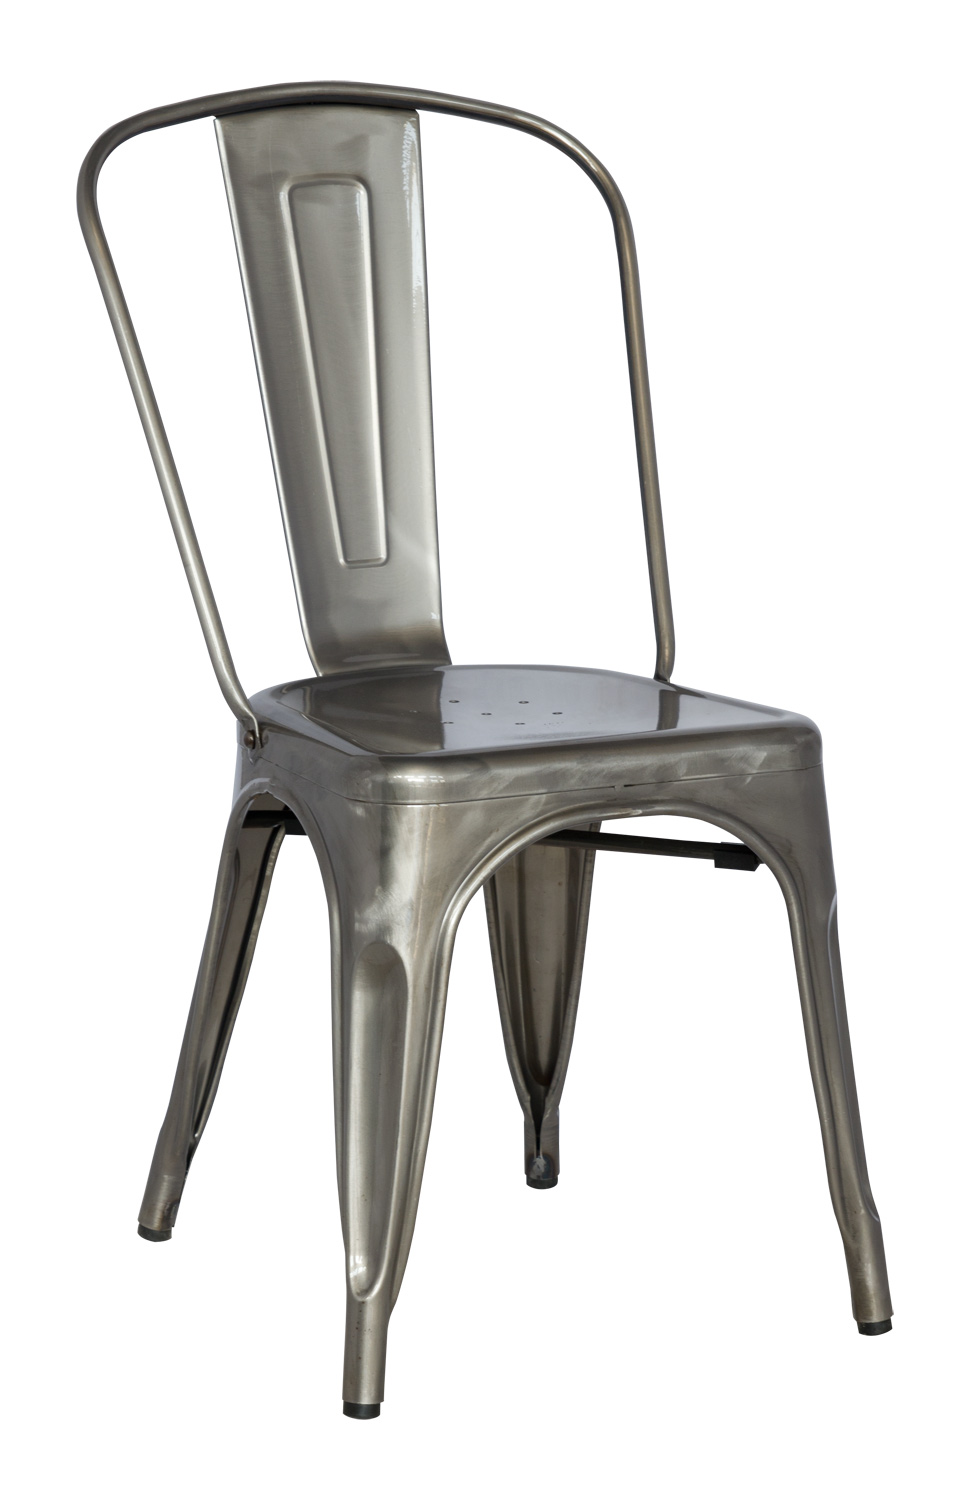 Chintaly Imports 8022 Cold Roll Steel Side Chair - Gun Metal